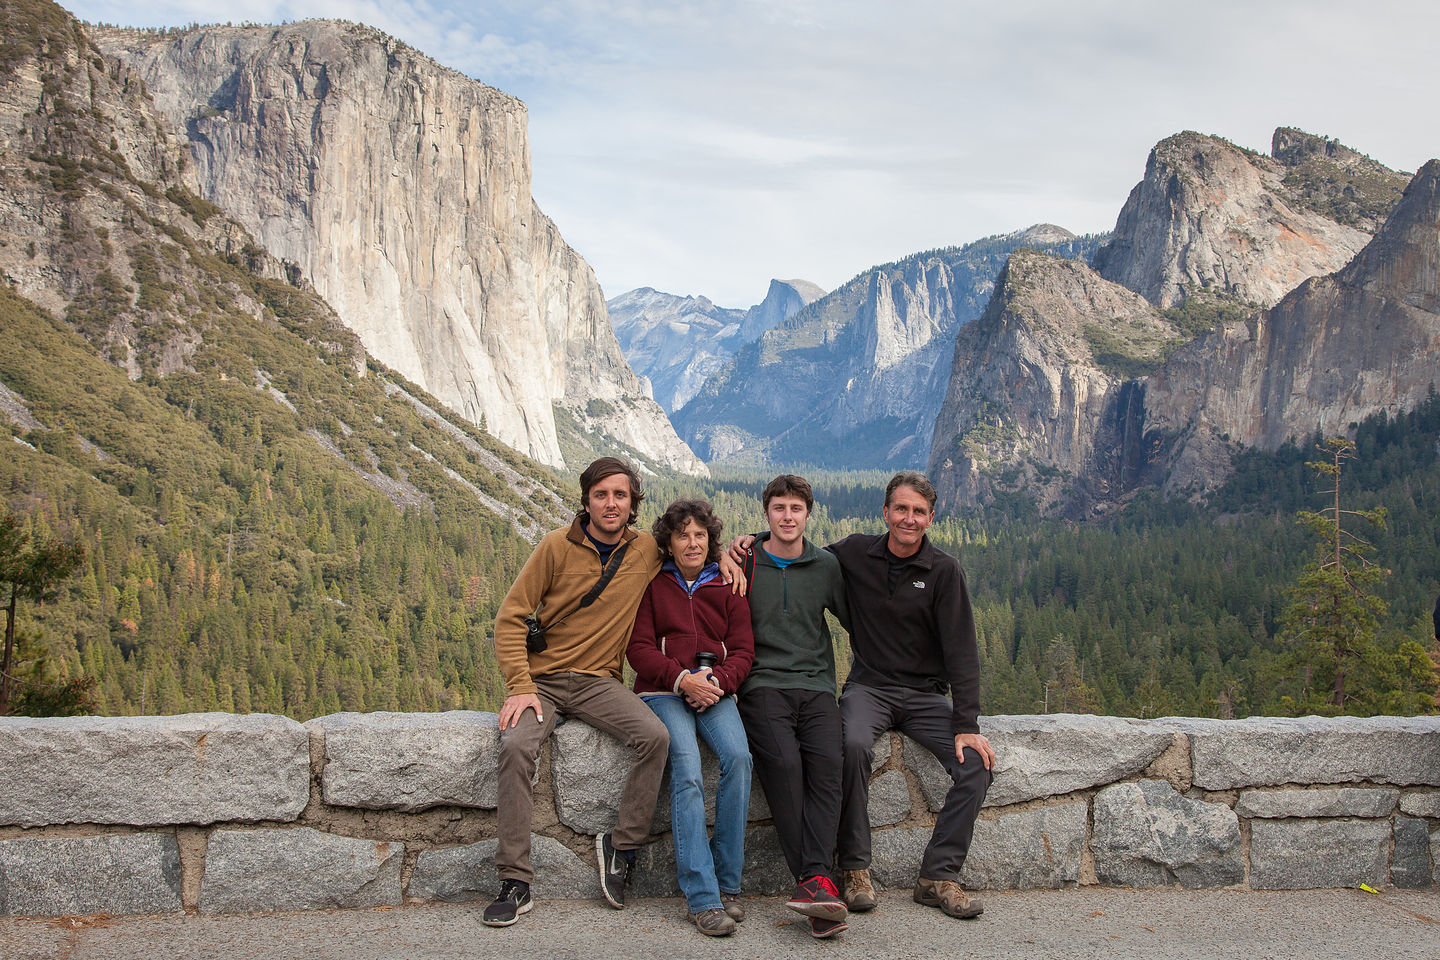 Family Photo at Tunnel View